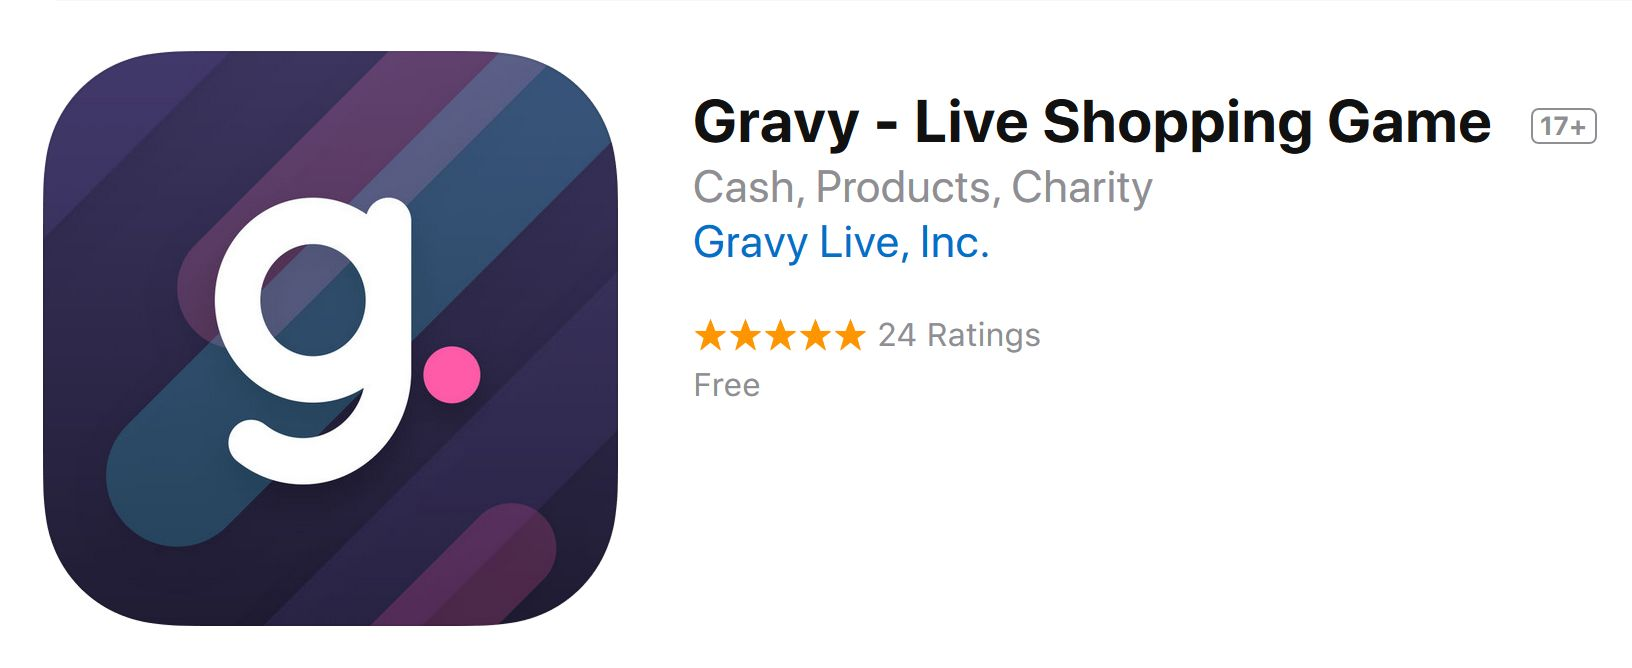 Gravy Live Shopping Game Reverse Auction and Game App Review